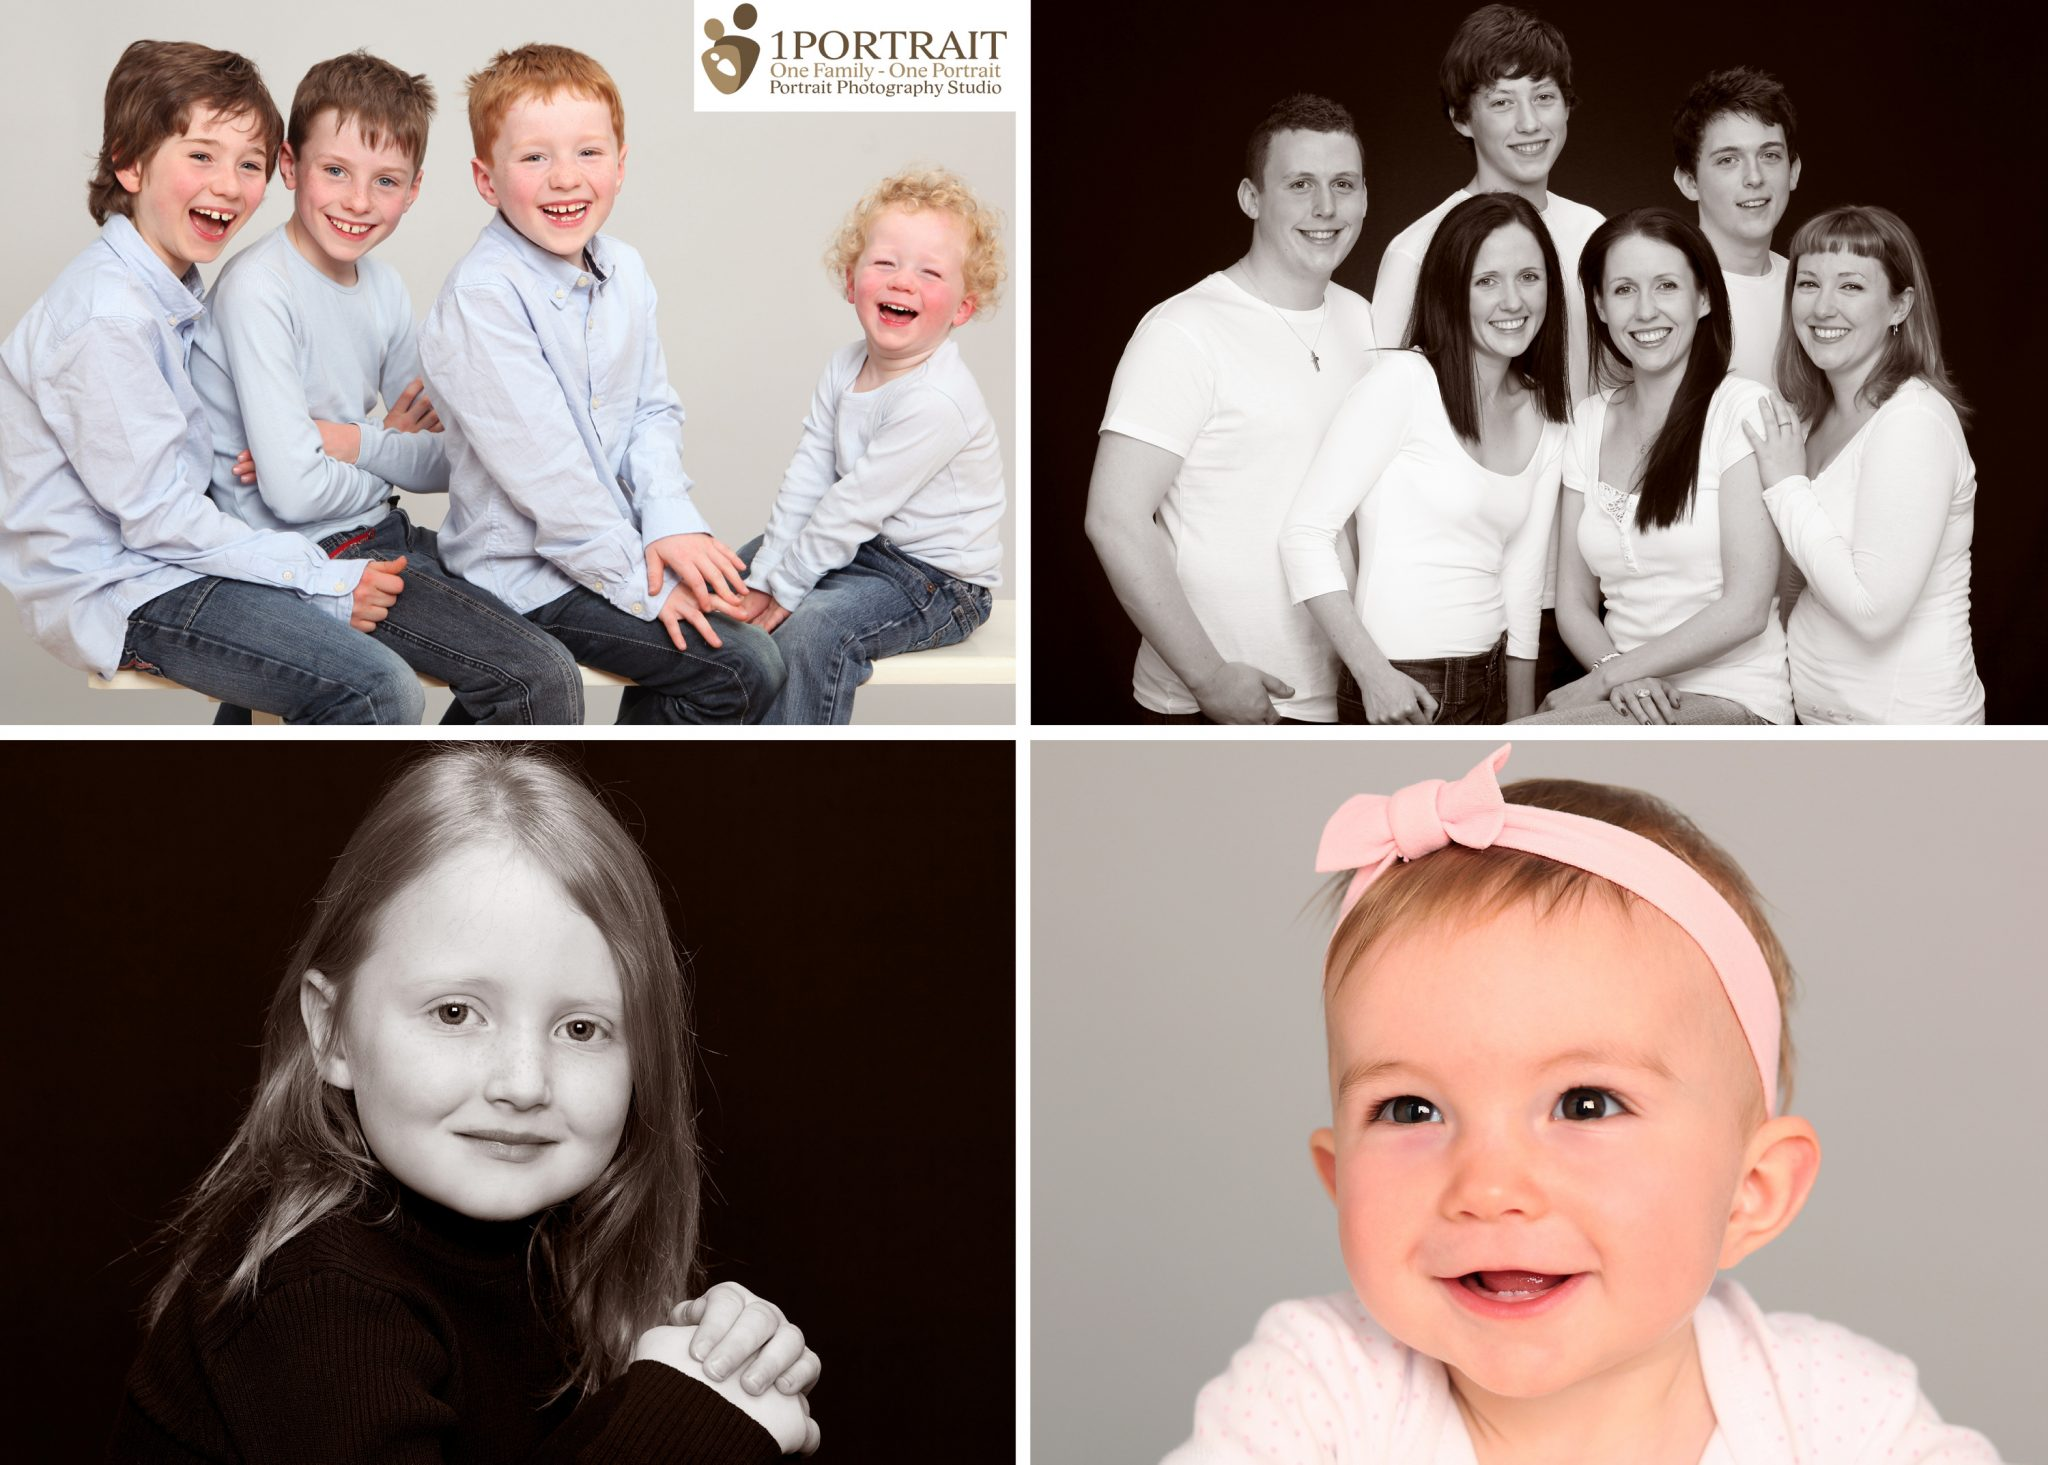 Collage of family portraits. 1PORTRAIT Family Photo Studio Dublin www.1portrait.ie